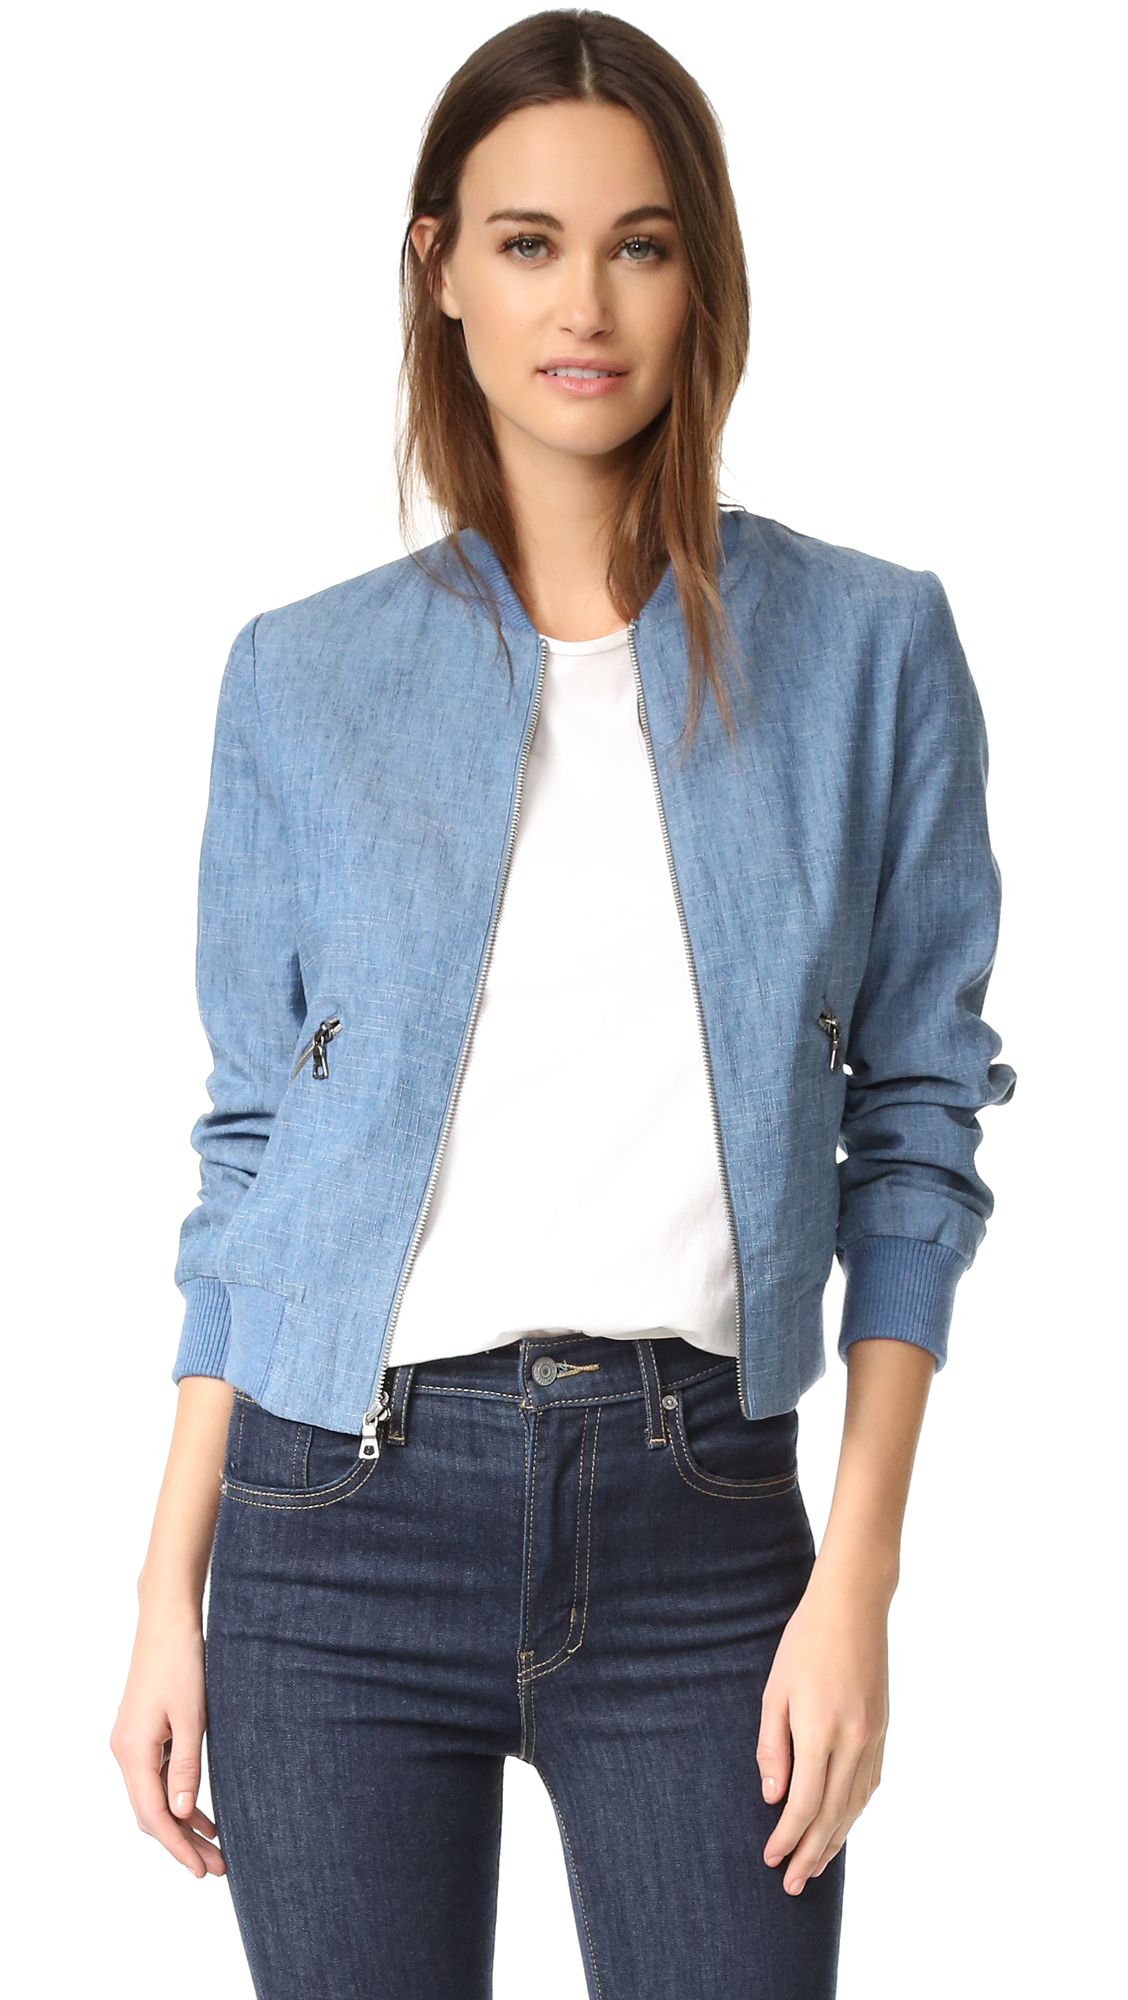 Alice + Olivia Lonnie Bomber Jacket - Medium Chambray at Shopbop